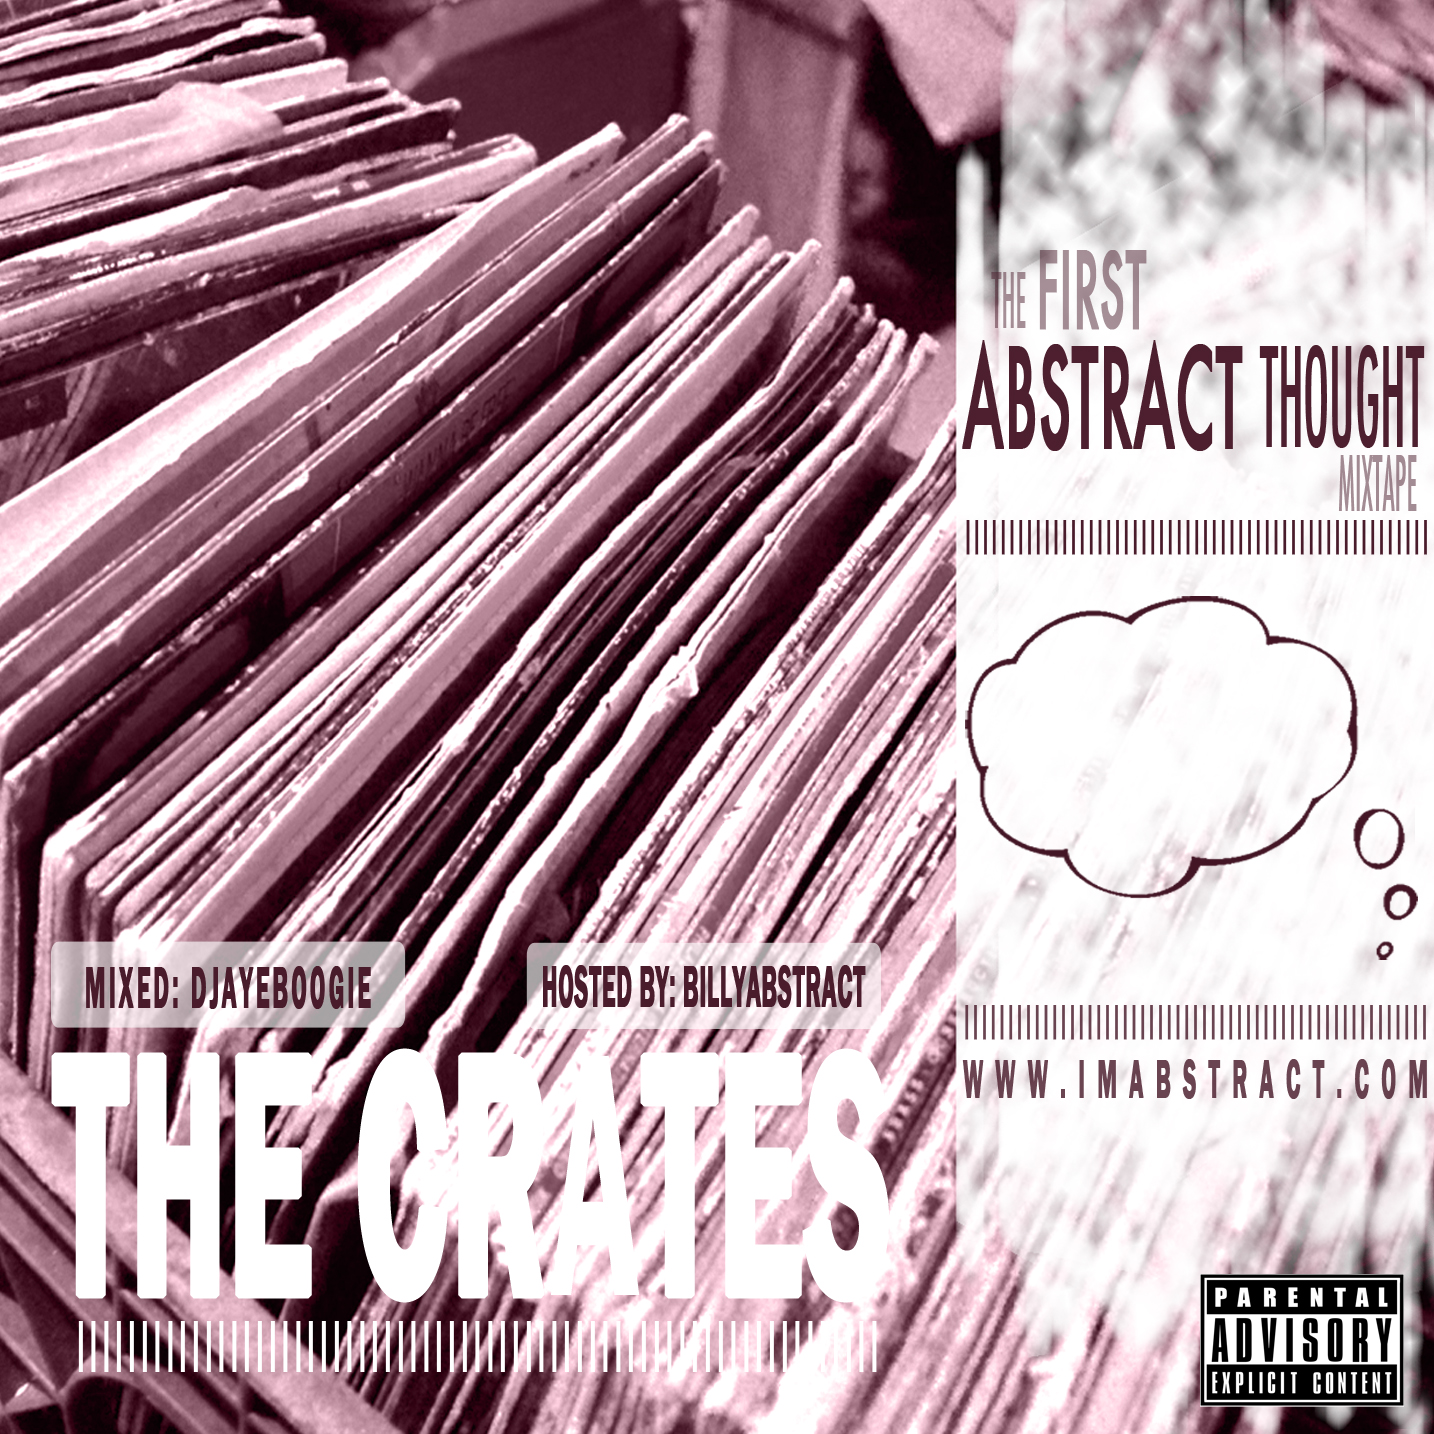 Abstract Thought (alwaysABSTRACT) &#8211; The Crates (Mixtape) (Hosted by @BillyABSTRACT &#038; @DjAYEboogie)